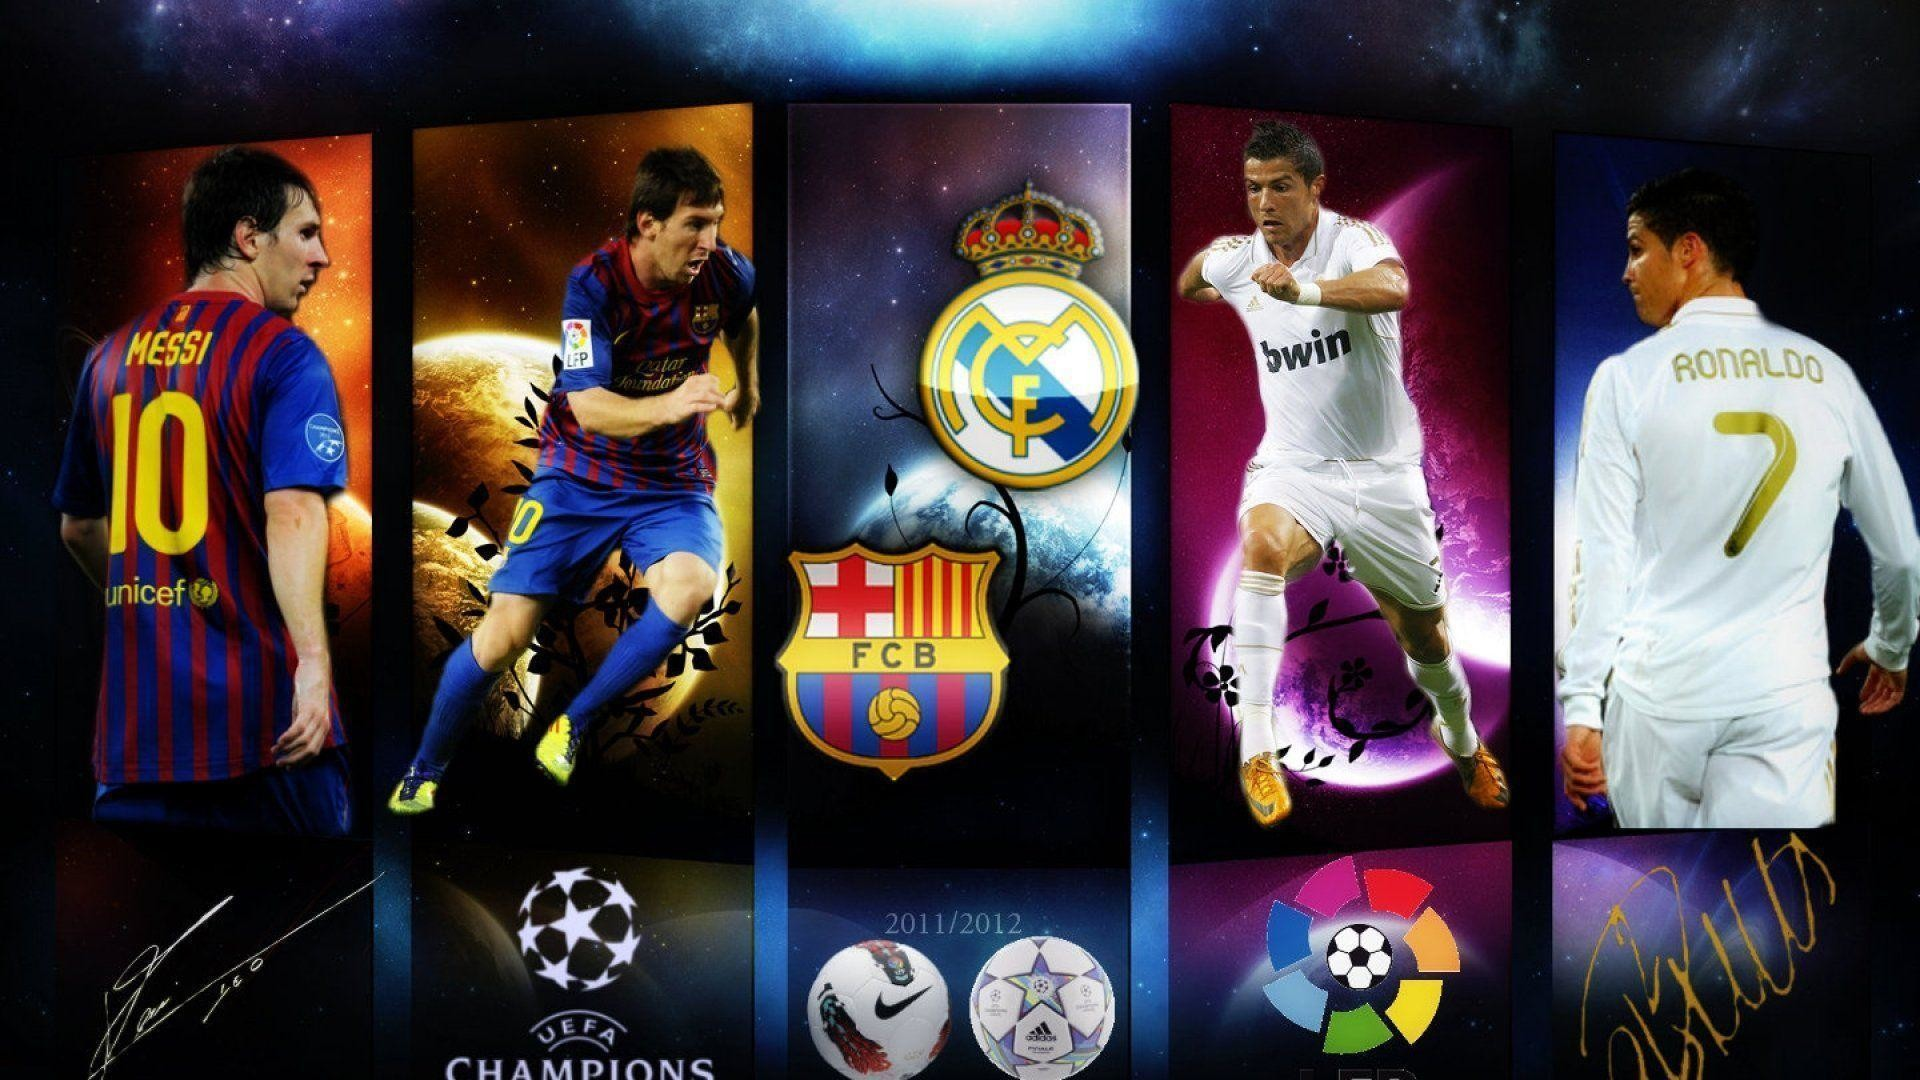 1920x1080 Lionel Messi Vs Cristiano Ronaldo Wallpaper » WallDevil - Best .